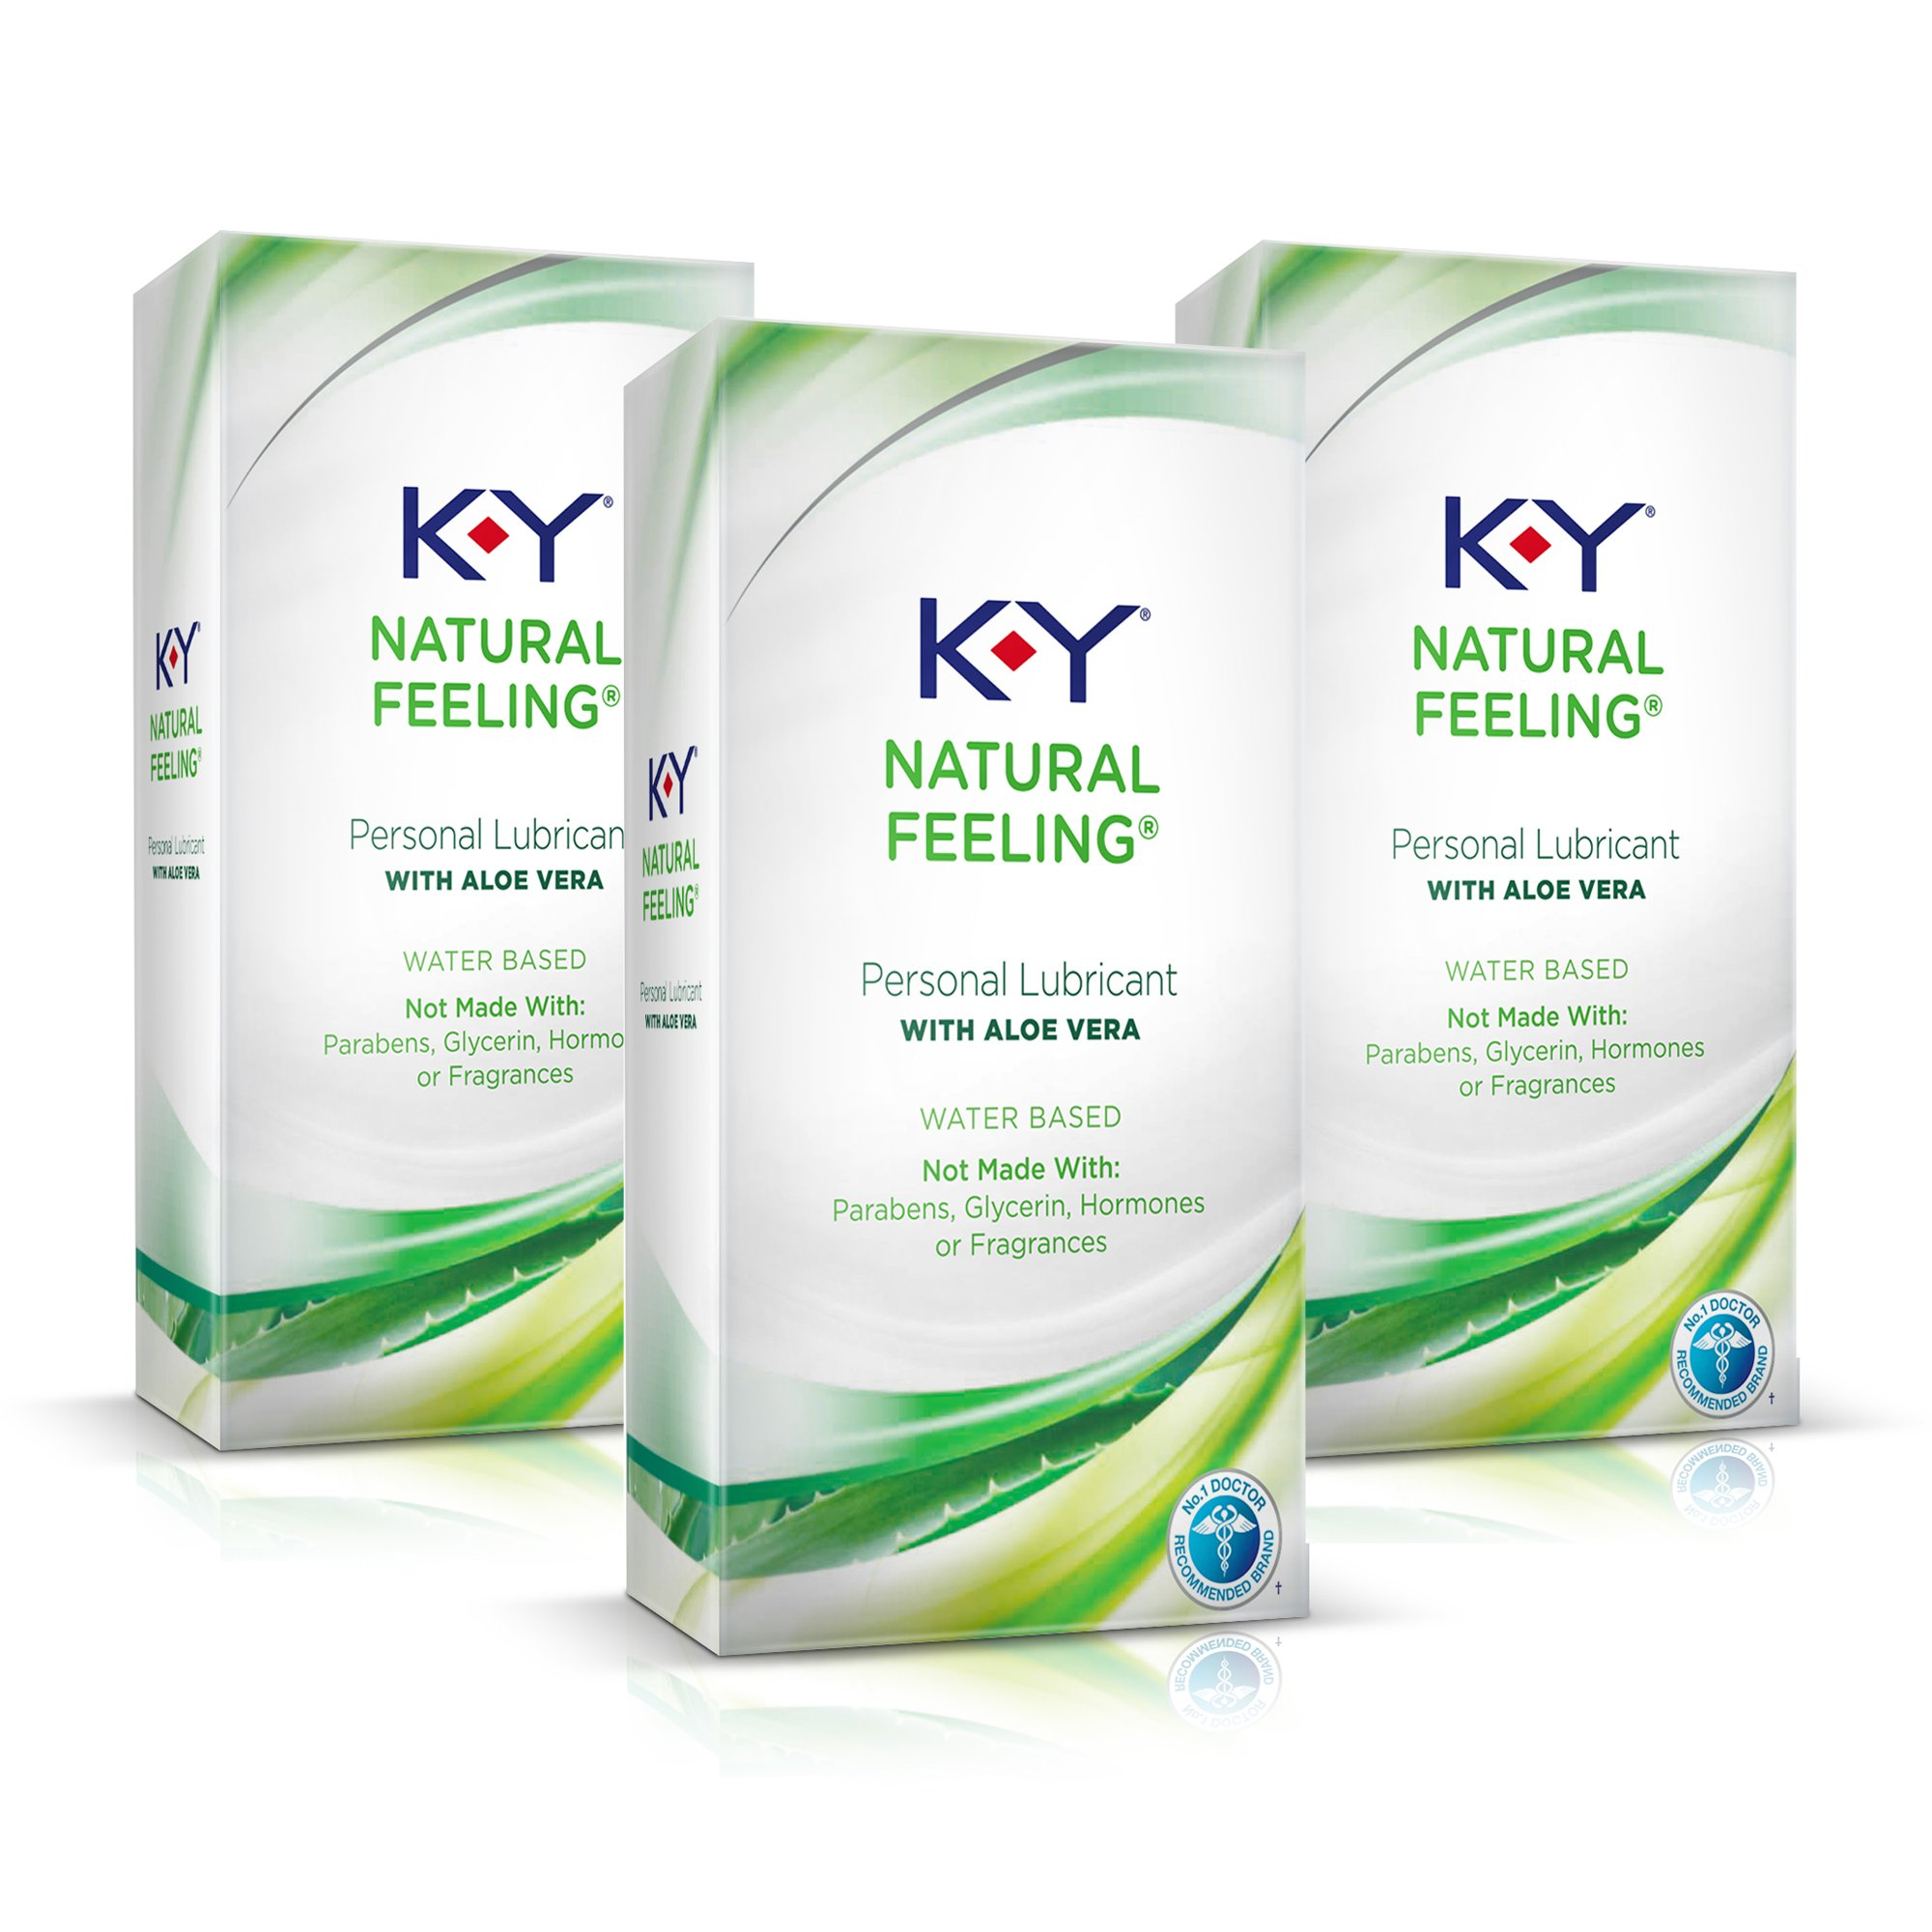 K-Y Natural Feeling with Aloe Vera Lubricant, 1.69 oz. ( Pack of 3)